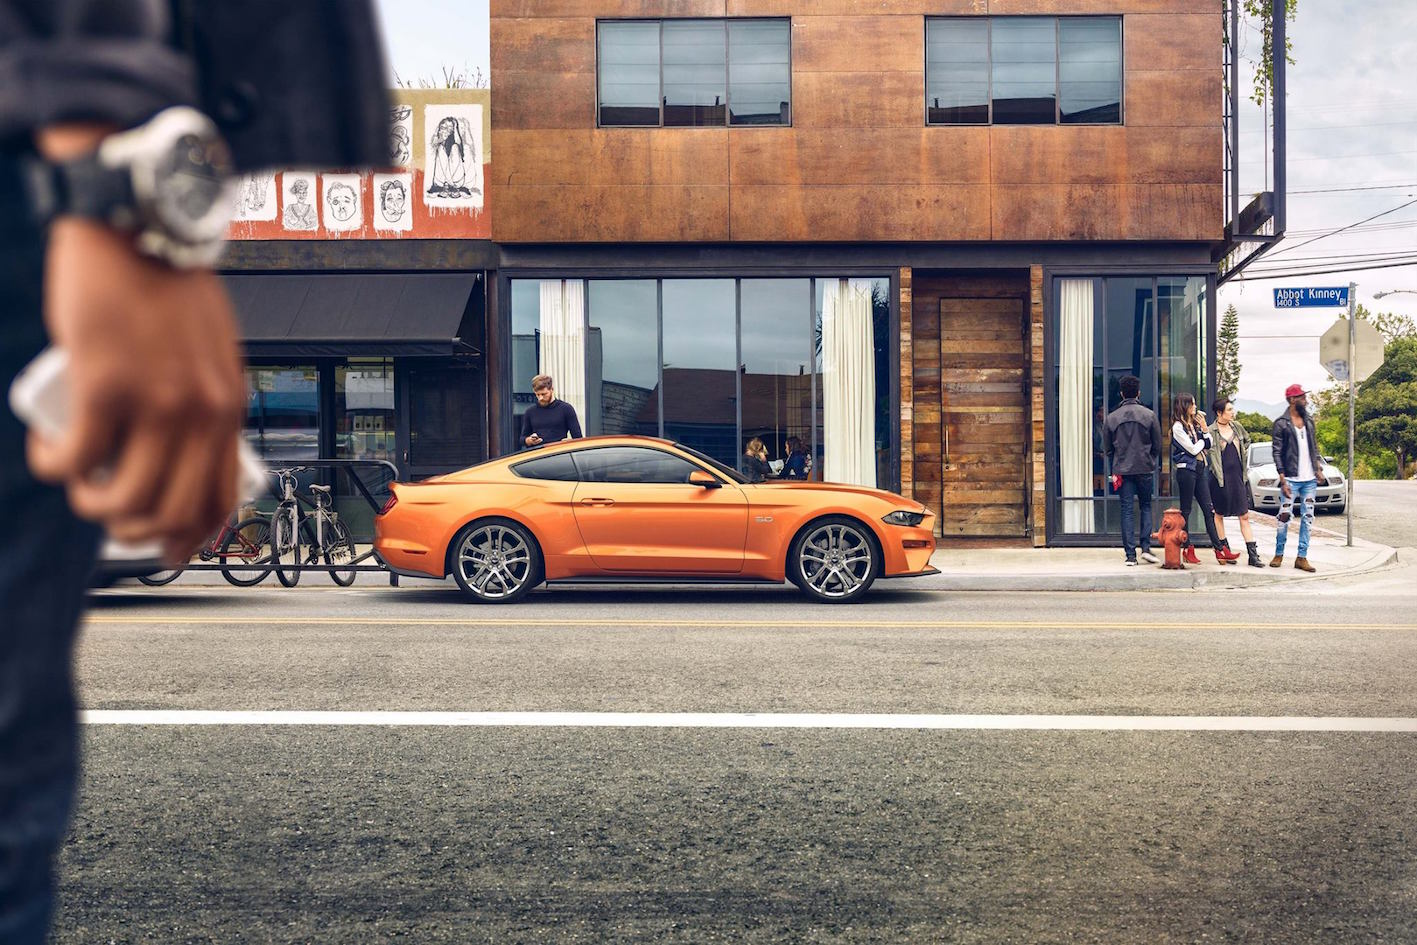 Ford Mustang Orange Seite 2018